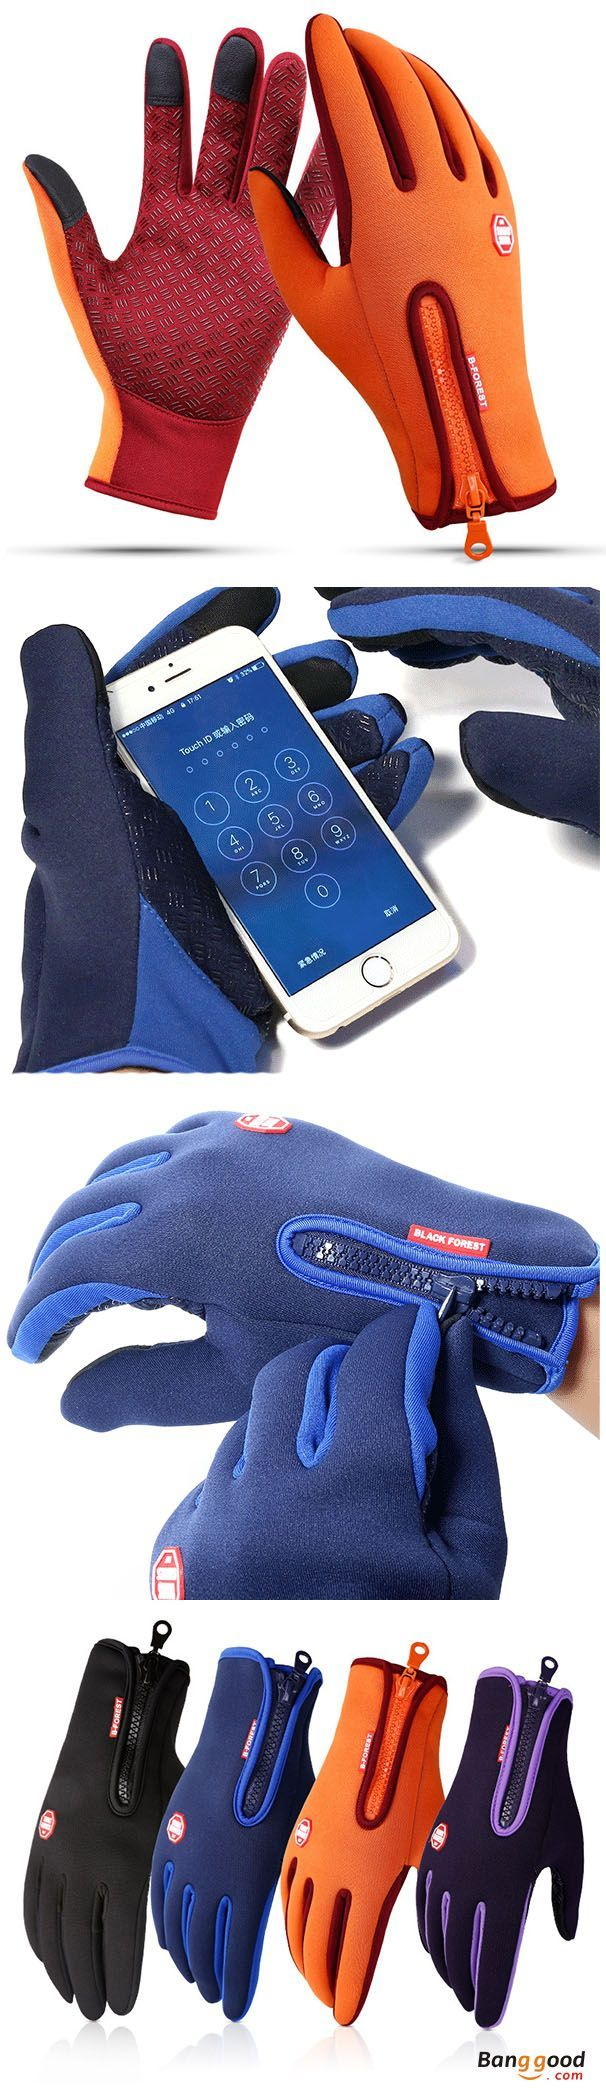 Mens Unisex Warm Touch Screen Fleece Gloves No-Slip Cycling Outdoor Windproof Ski Gloves. Windstopper, waterproof, Touch Screen, Slip the zipper, Anti-slip. Apply to Skiing, Outdoor Sports, Riding etc. 6 colors to match your style. Have a look!